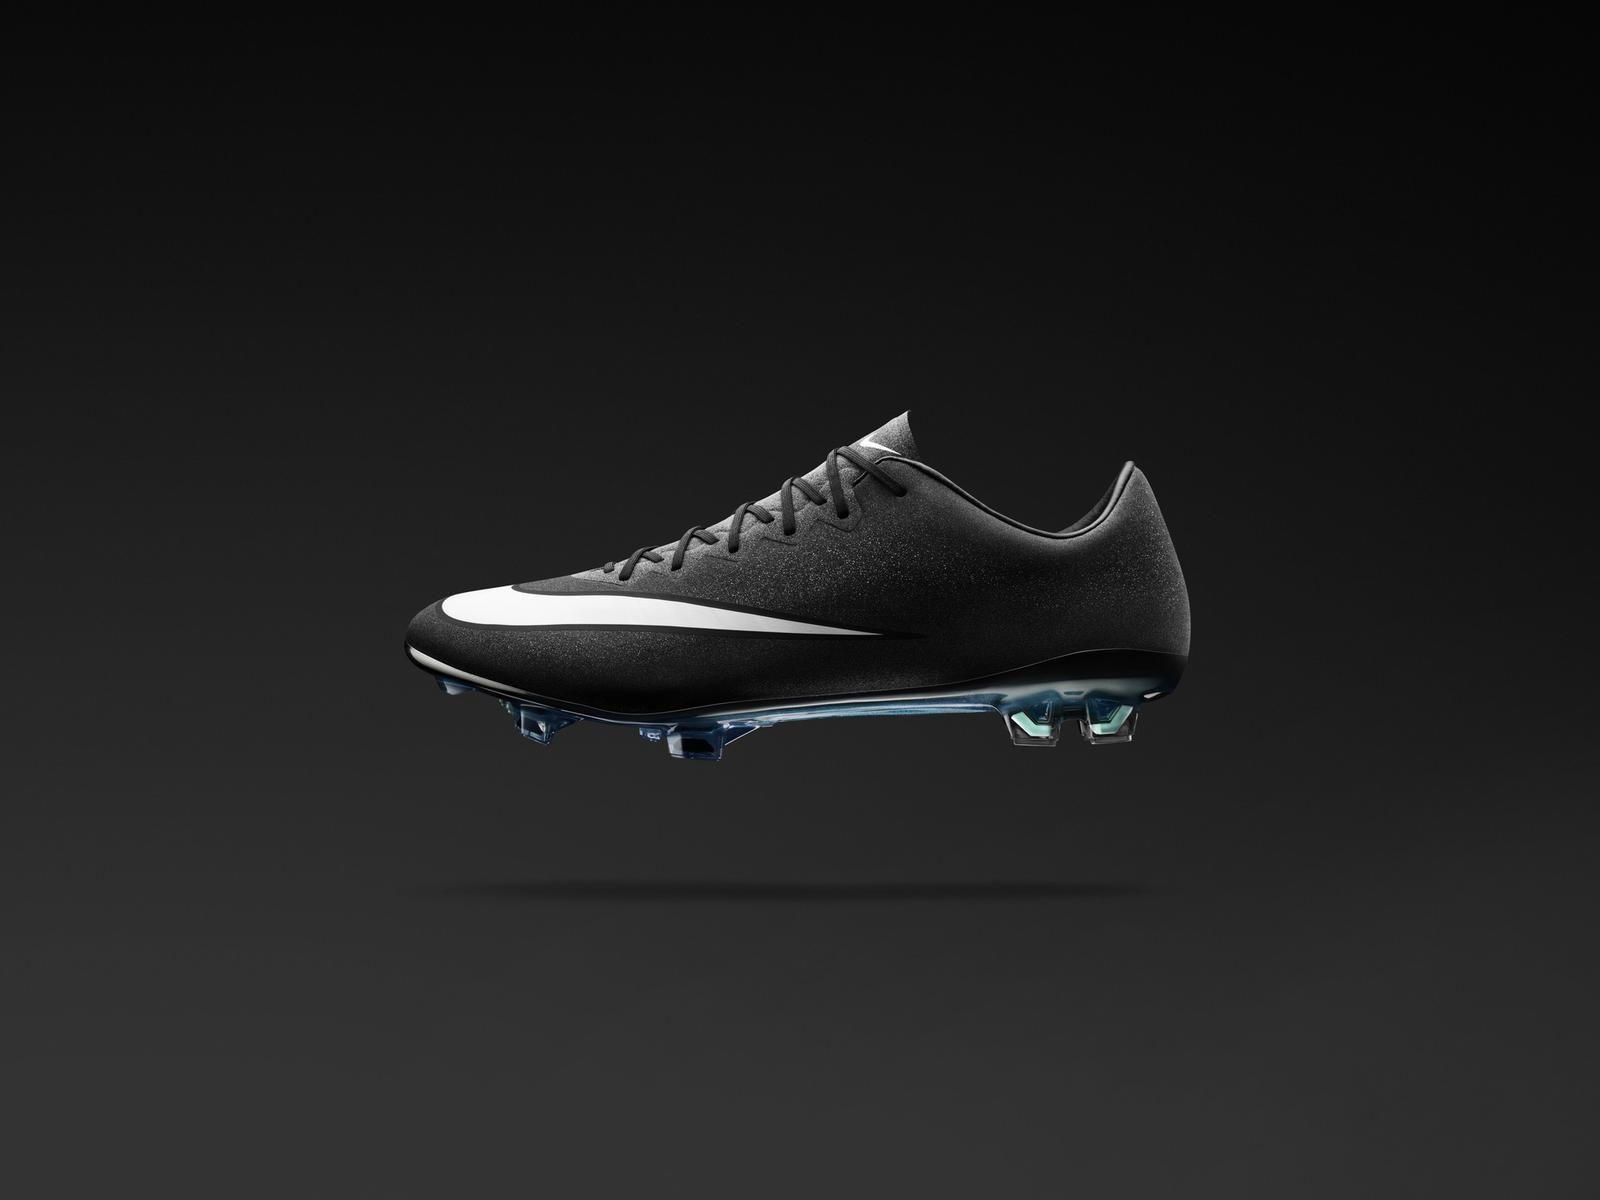 CR7 Shoes Wallpapers - Wallpaper Cave